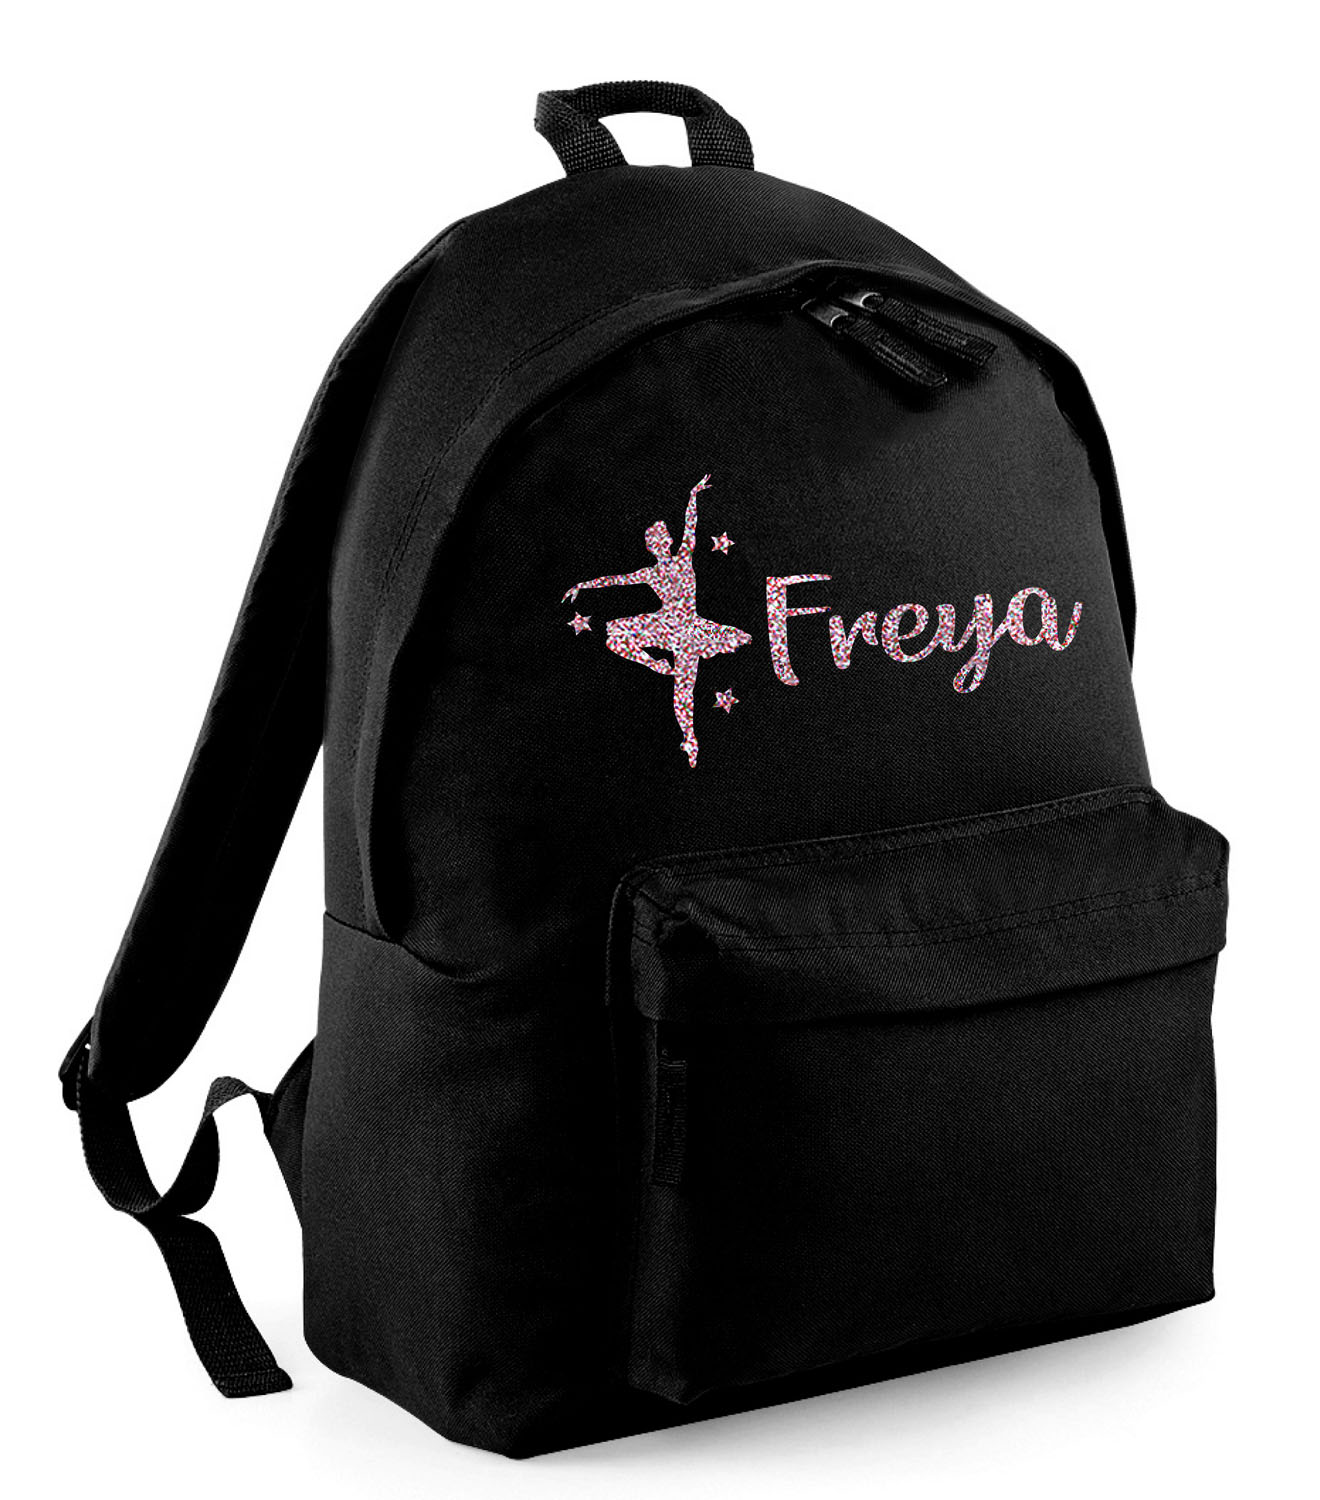 Personalized Bag dance Personalised Junior Backpack Rucksack colour choices school